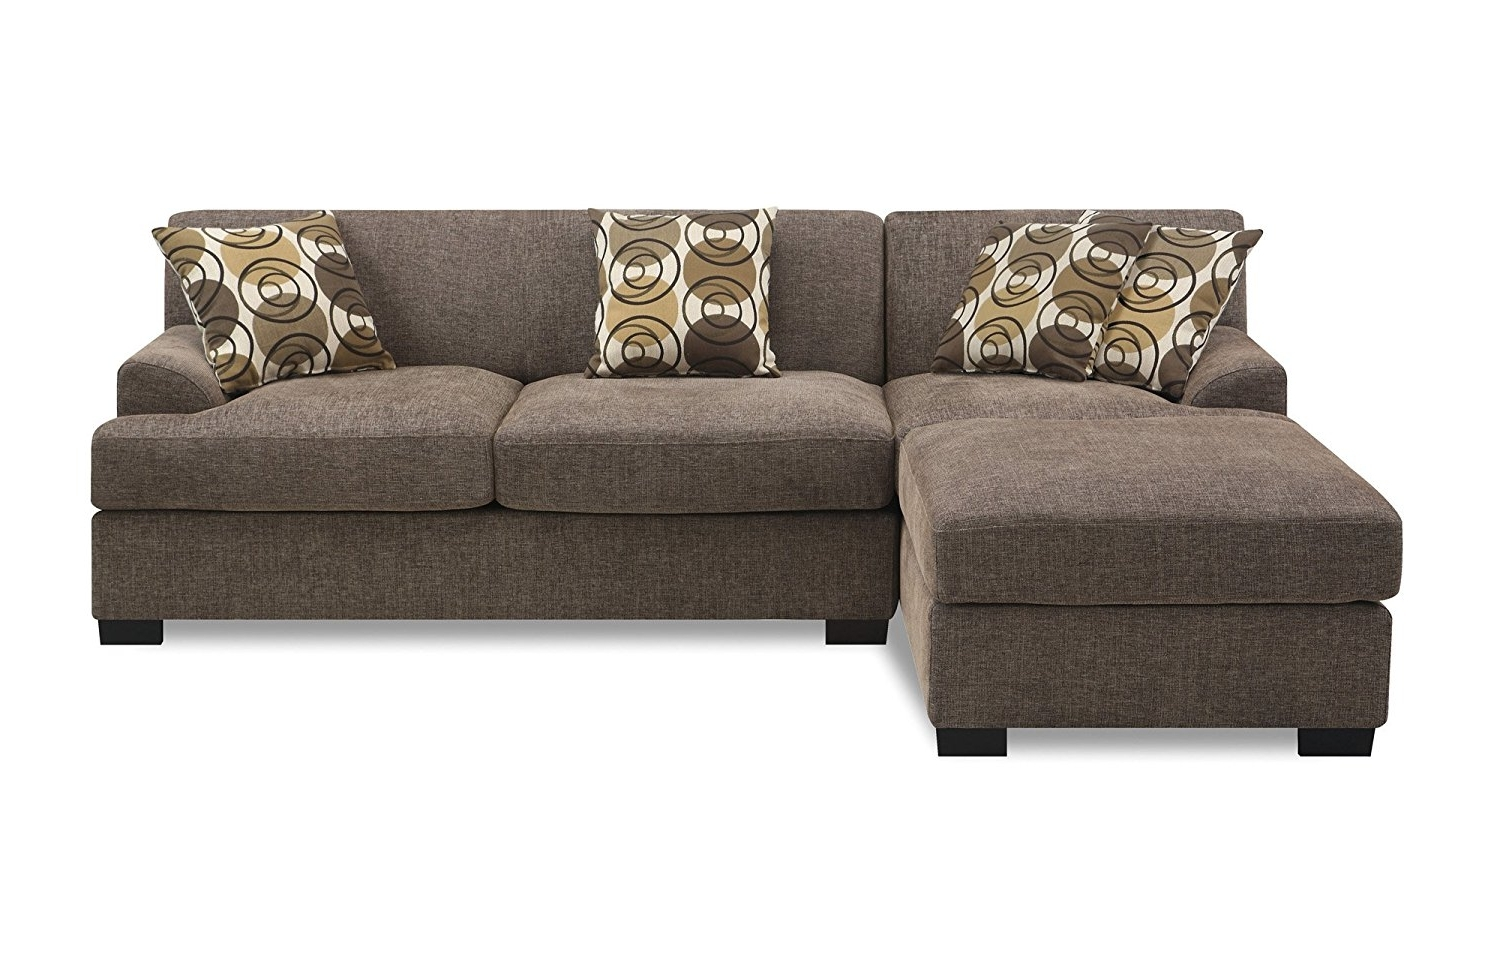 Most Recent Amazon: Poundex Montereal 2 Piece Chaise Love Sectional Pertaining To 2 Piece Sectionals With Chaise (View 11 of 15)